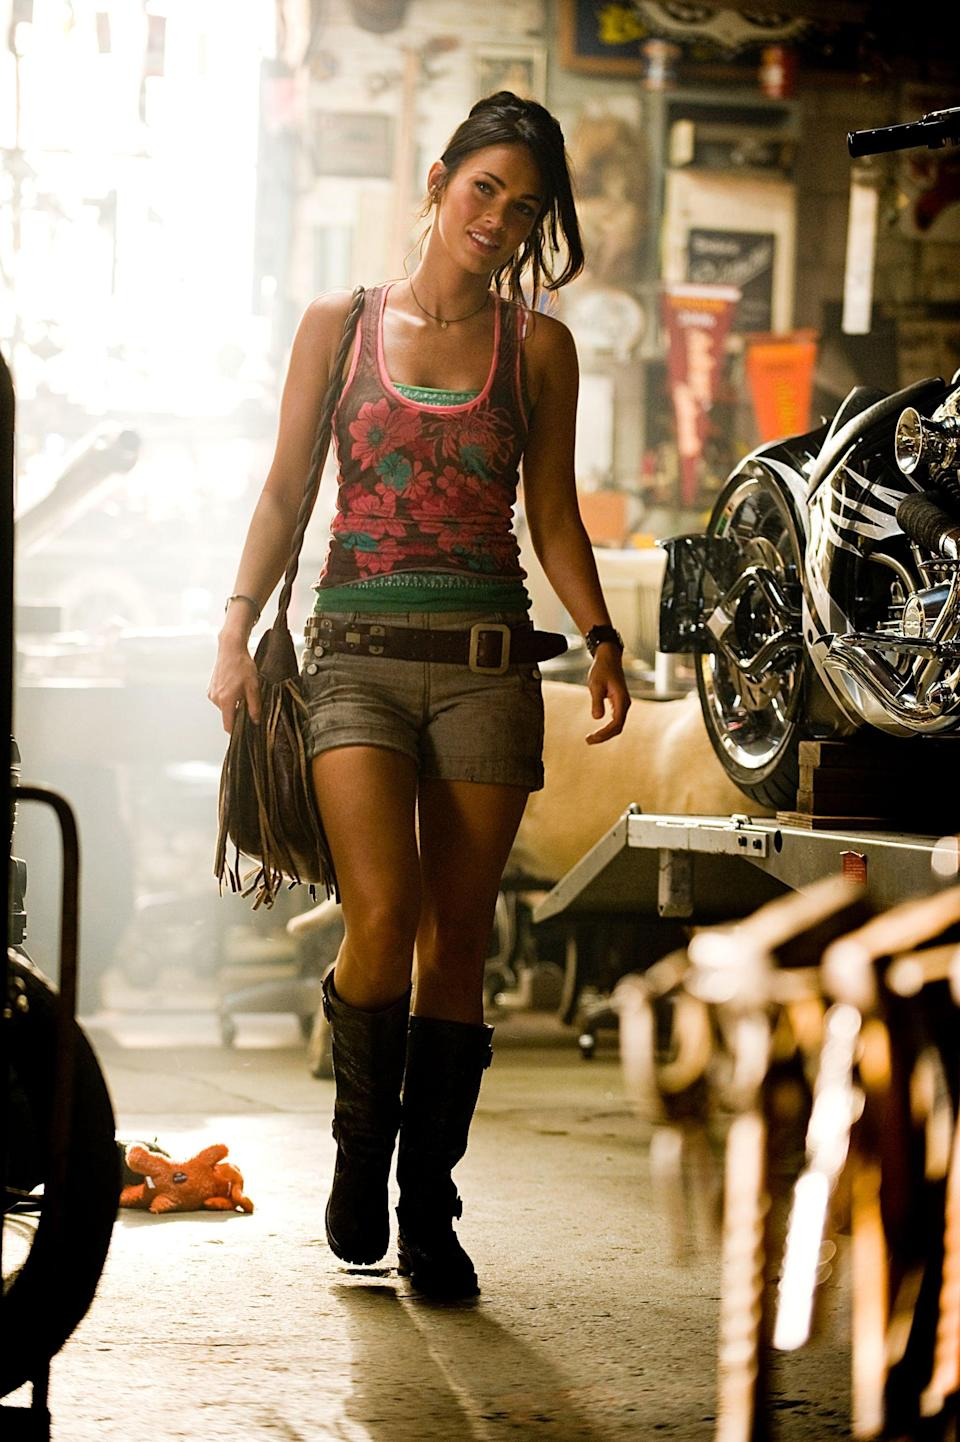 <p>Who could forget the dimension that came with layering two vibrantly-colored ribbed tanks, as Megan exhibited here in <b>Transformers: Revenge of the Fallen</b>?</p>